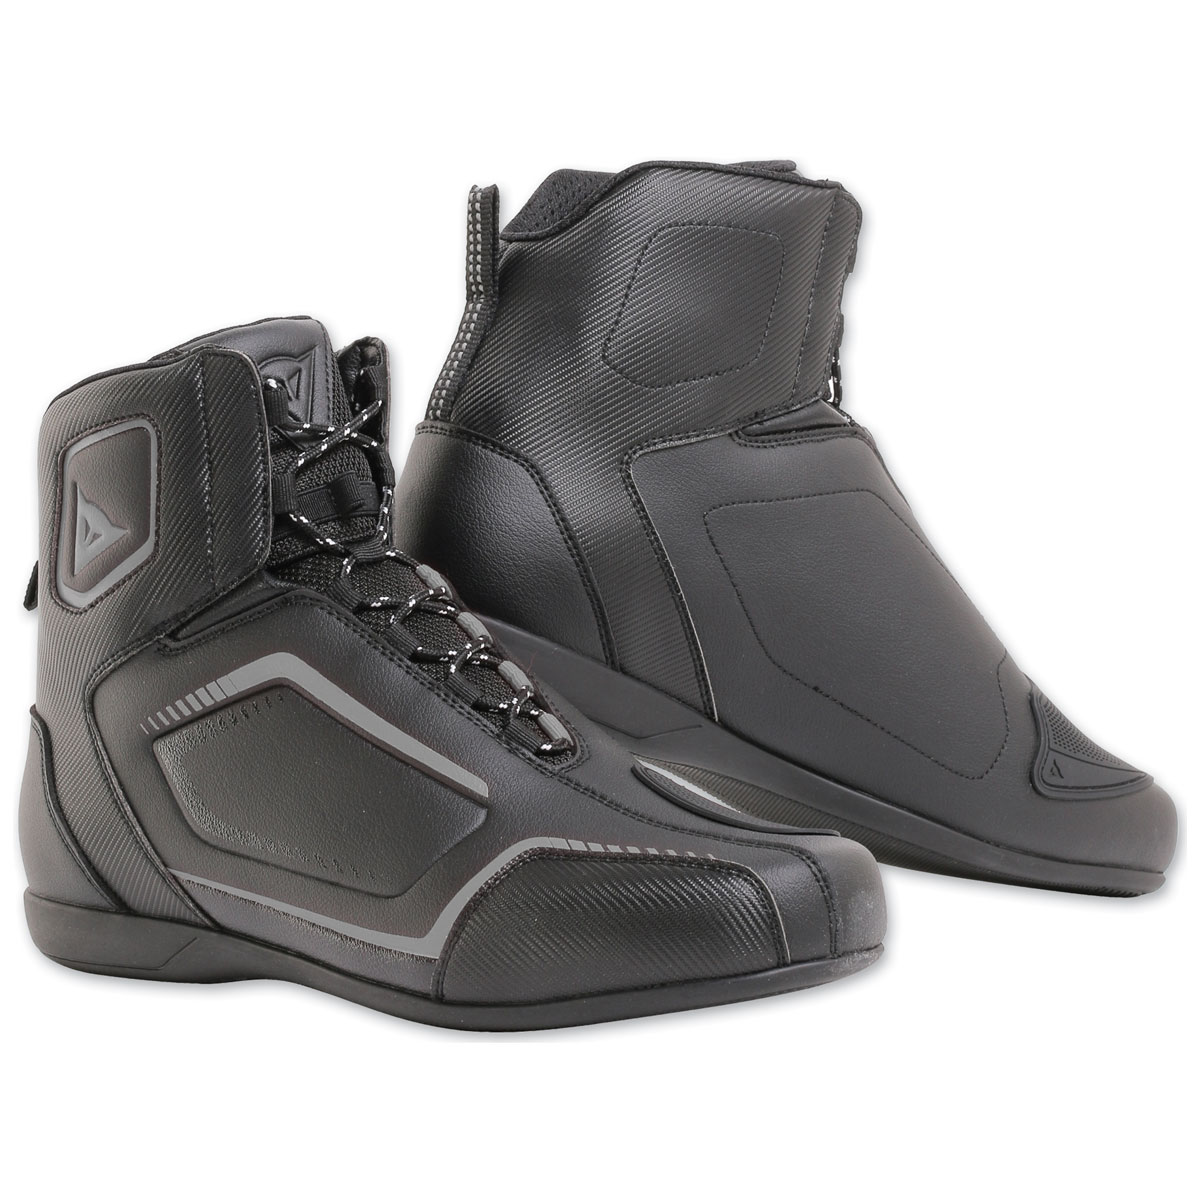 Dainese Men's Raptors Black/Anthracite Shoes